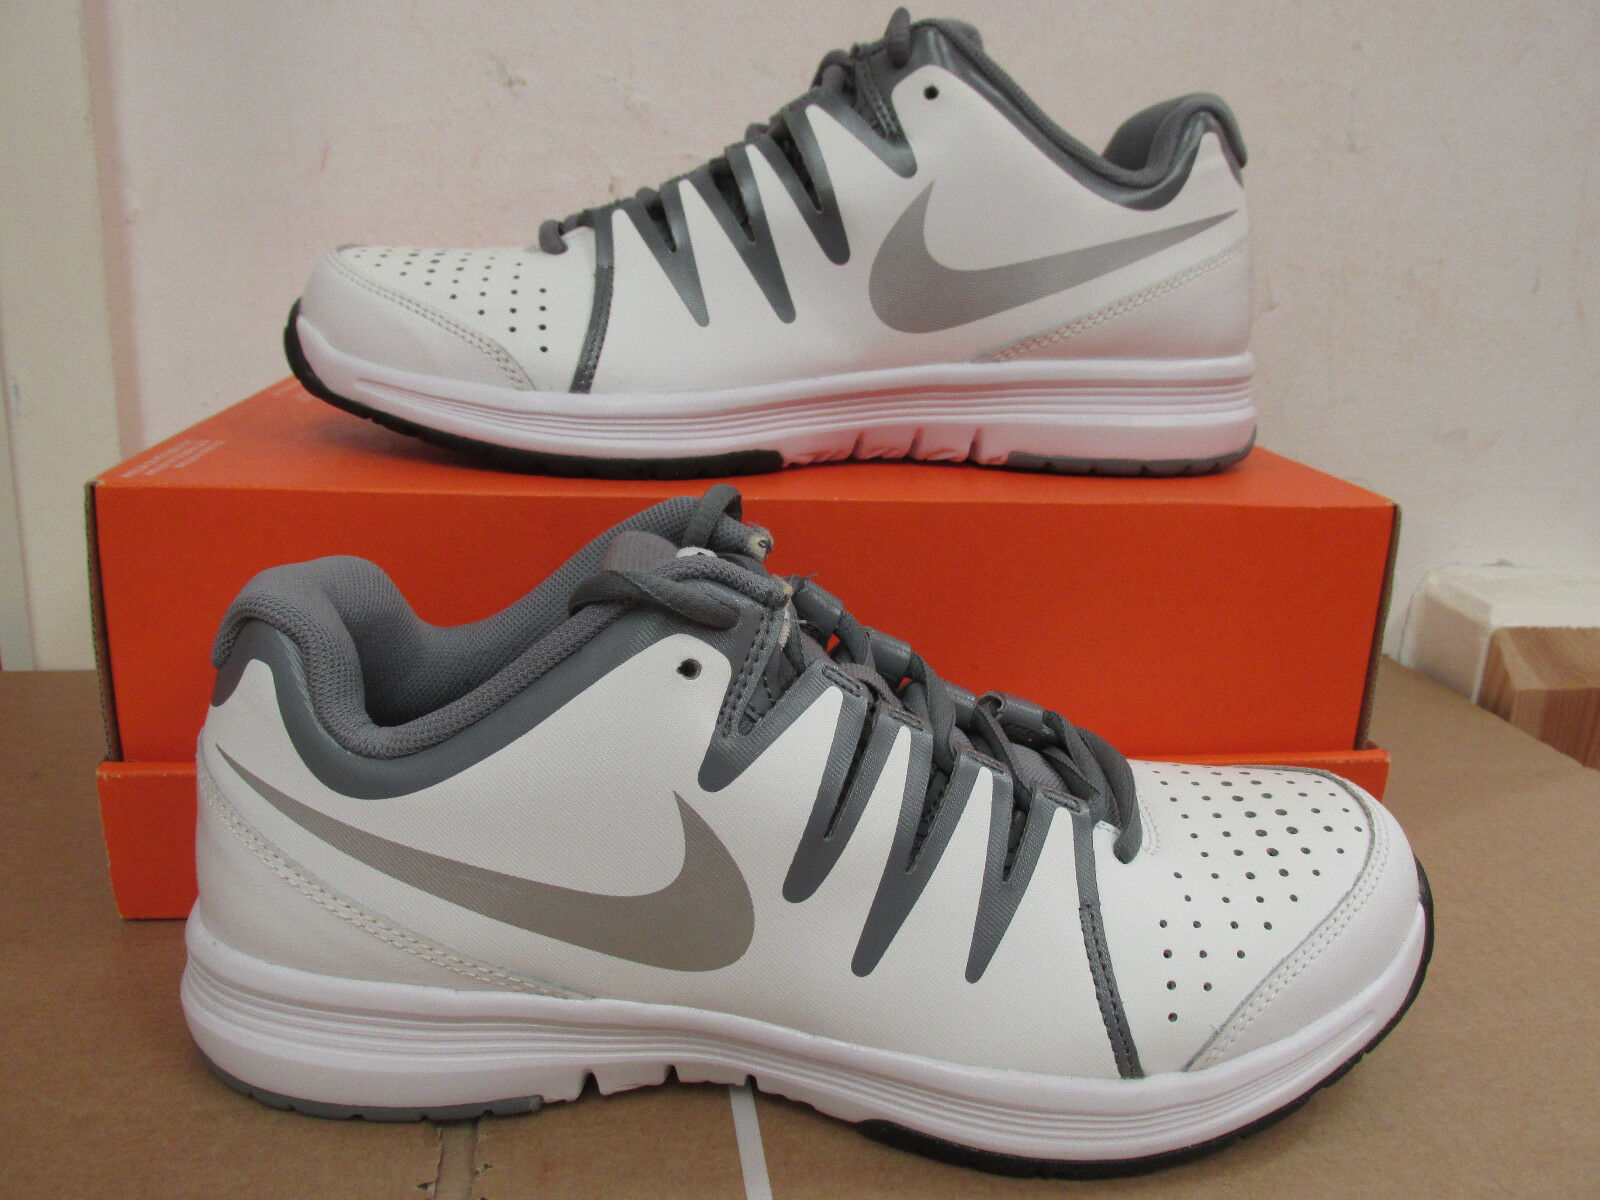 The most popular shoes for men and women Nike Vapor Court Womens Tennis Shoes 631713 100 Sneakers Trainers CLEARANCE